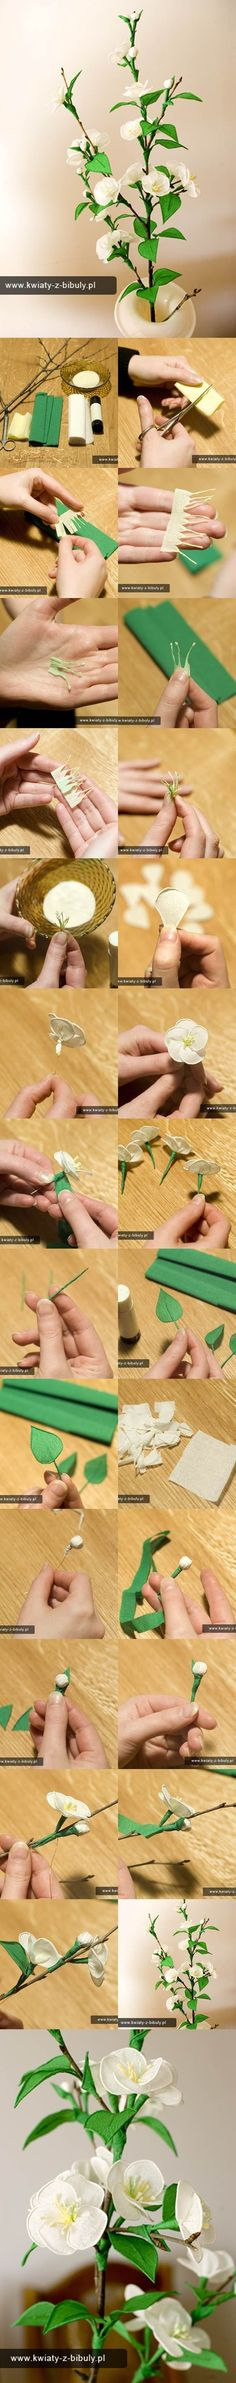 DIY Delicate Crepe Paper Cherry Blossom Sprig www. Fake Flowers, Diy Flowers, Fabric Flowers, Flower Crafts, Flower Art, Blossom Flower, Fleurs Diy, Diy Papier, Tissue Paper Flowers